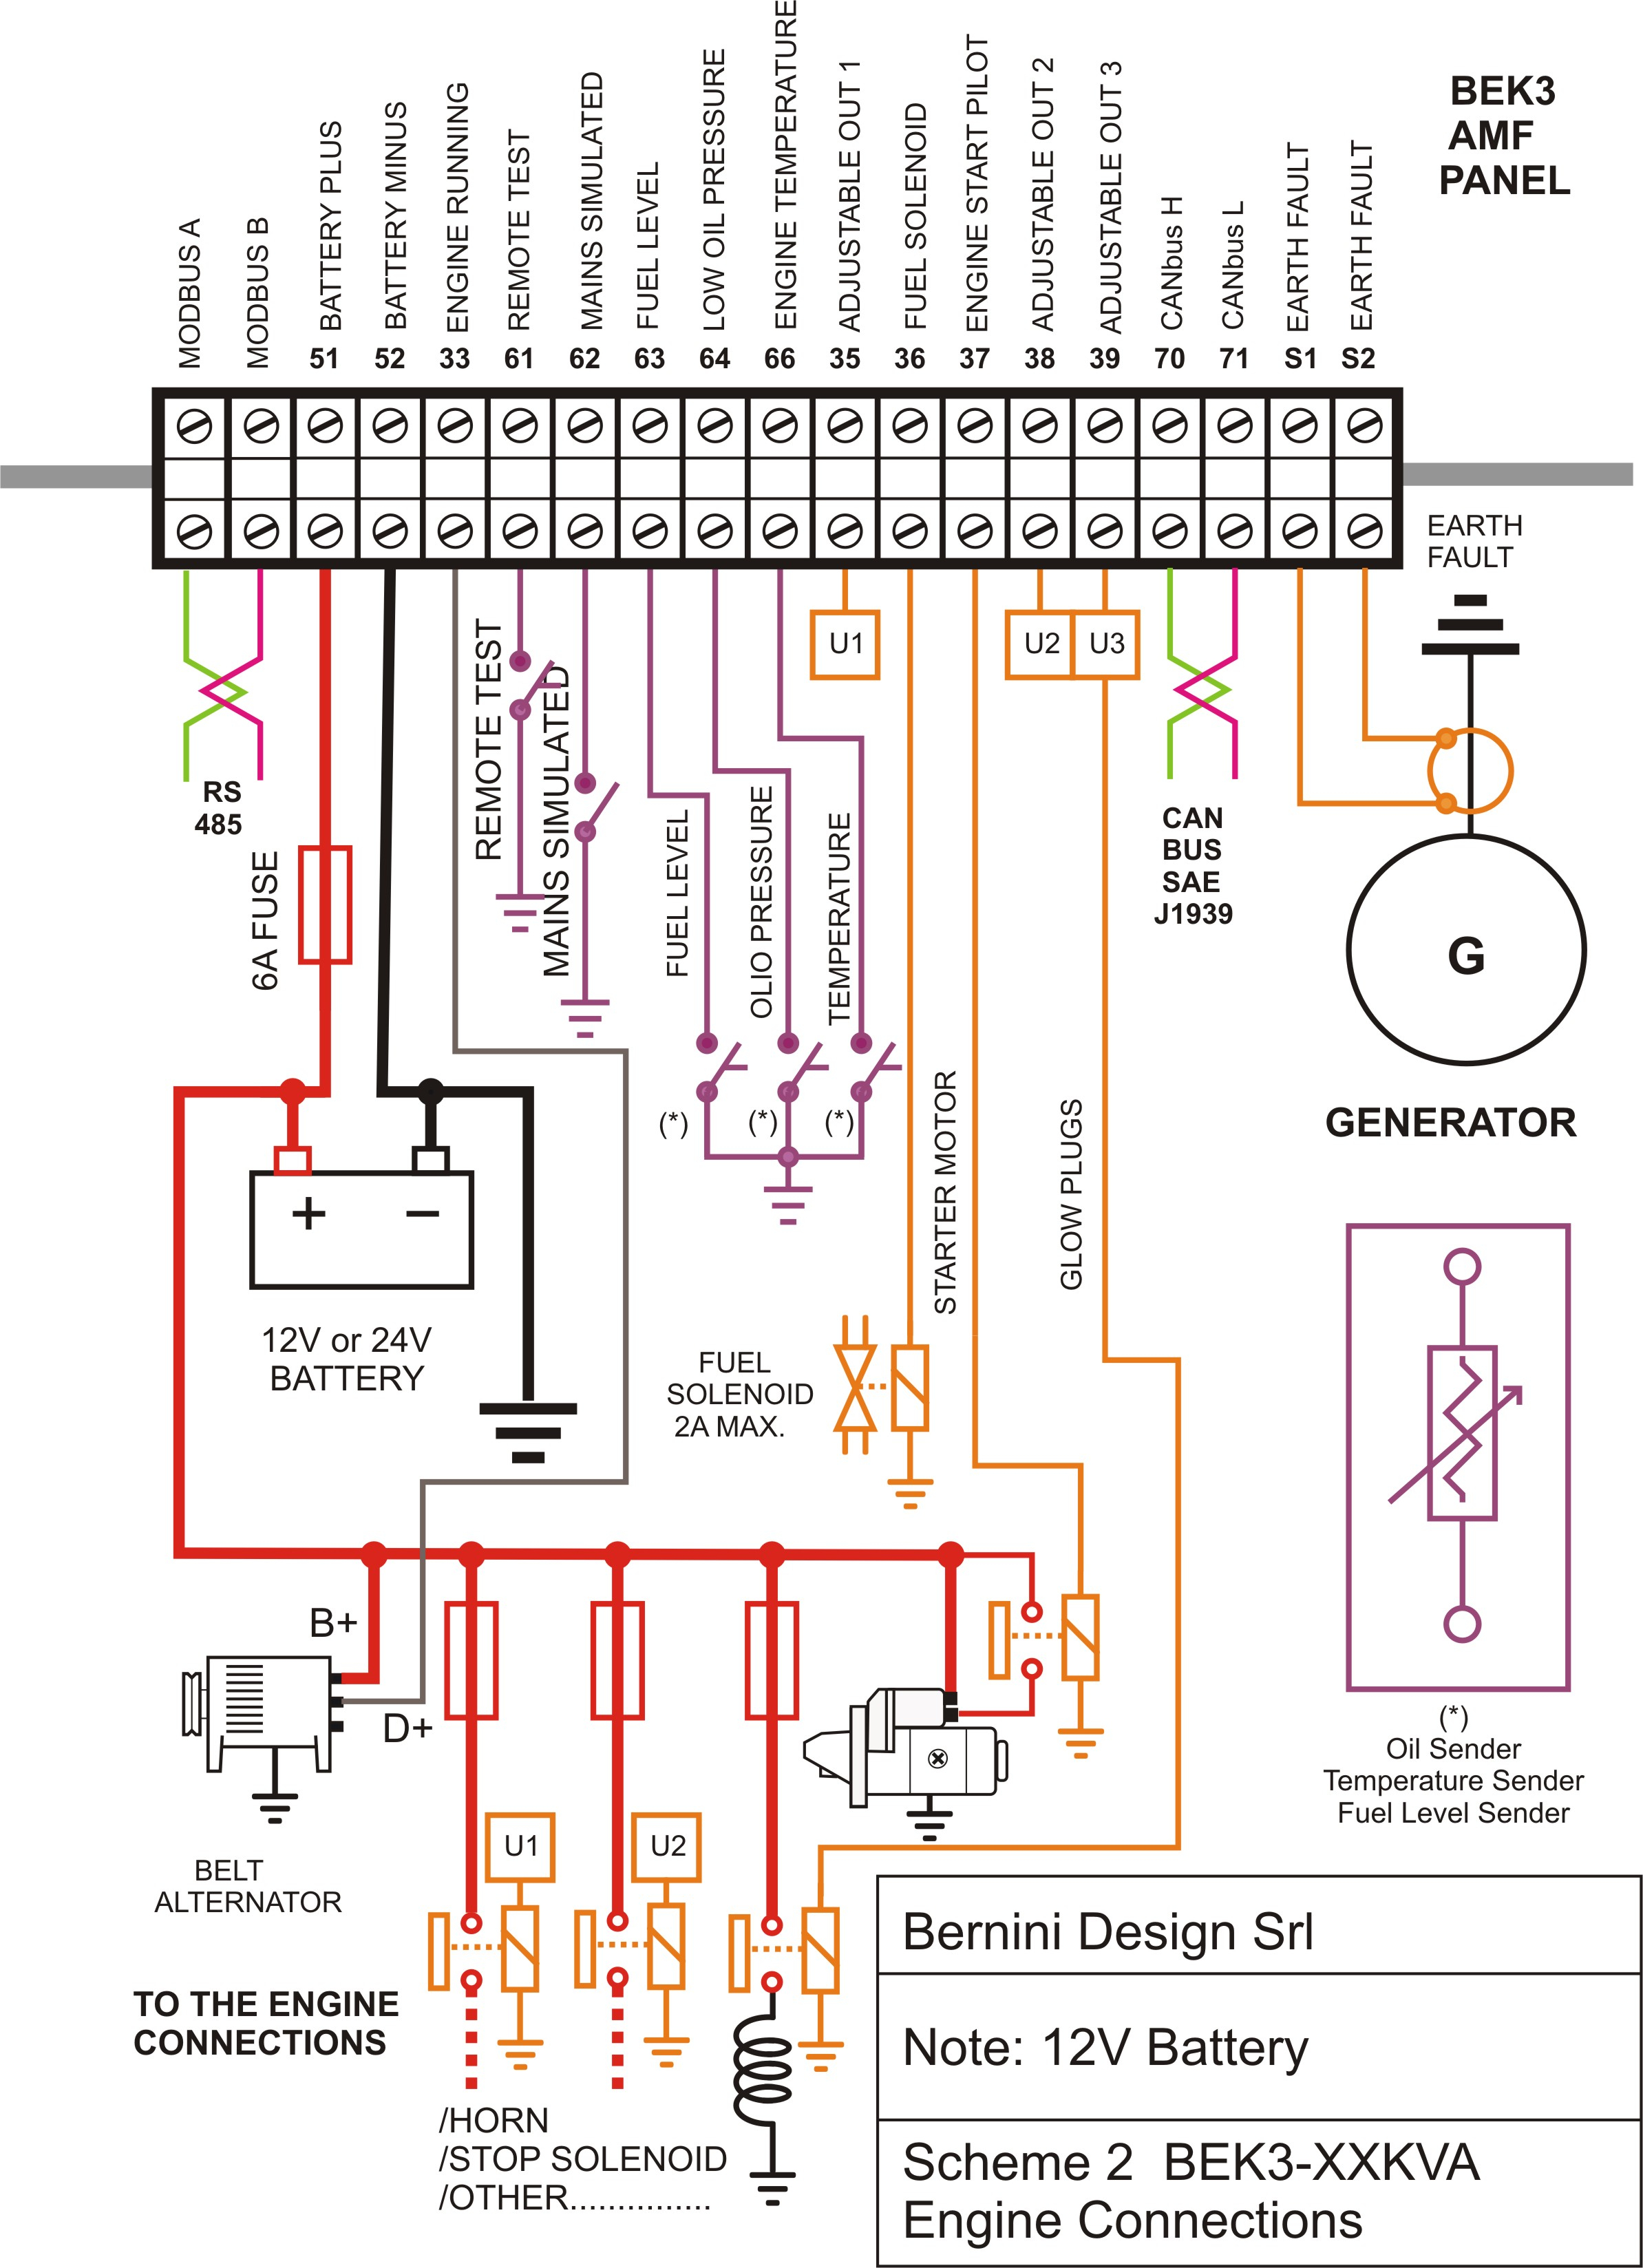 electrical panel board wiring diagram pdf 1992 toyota hilux horn plc sample